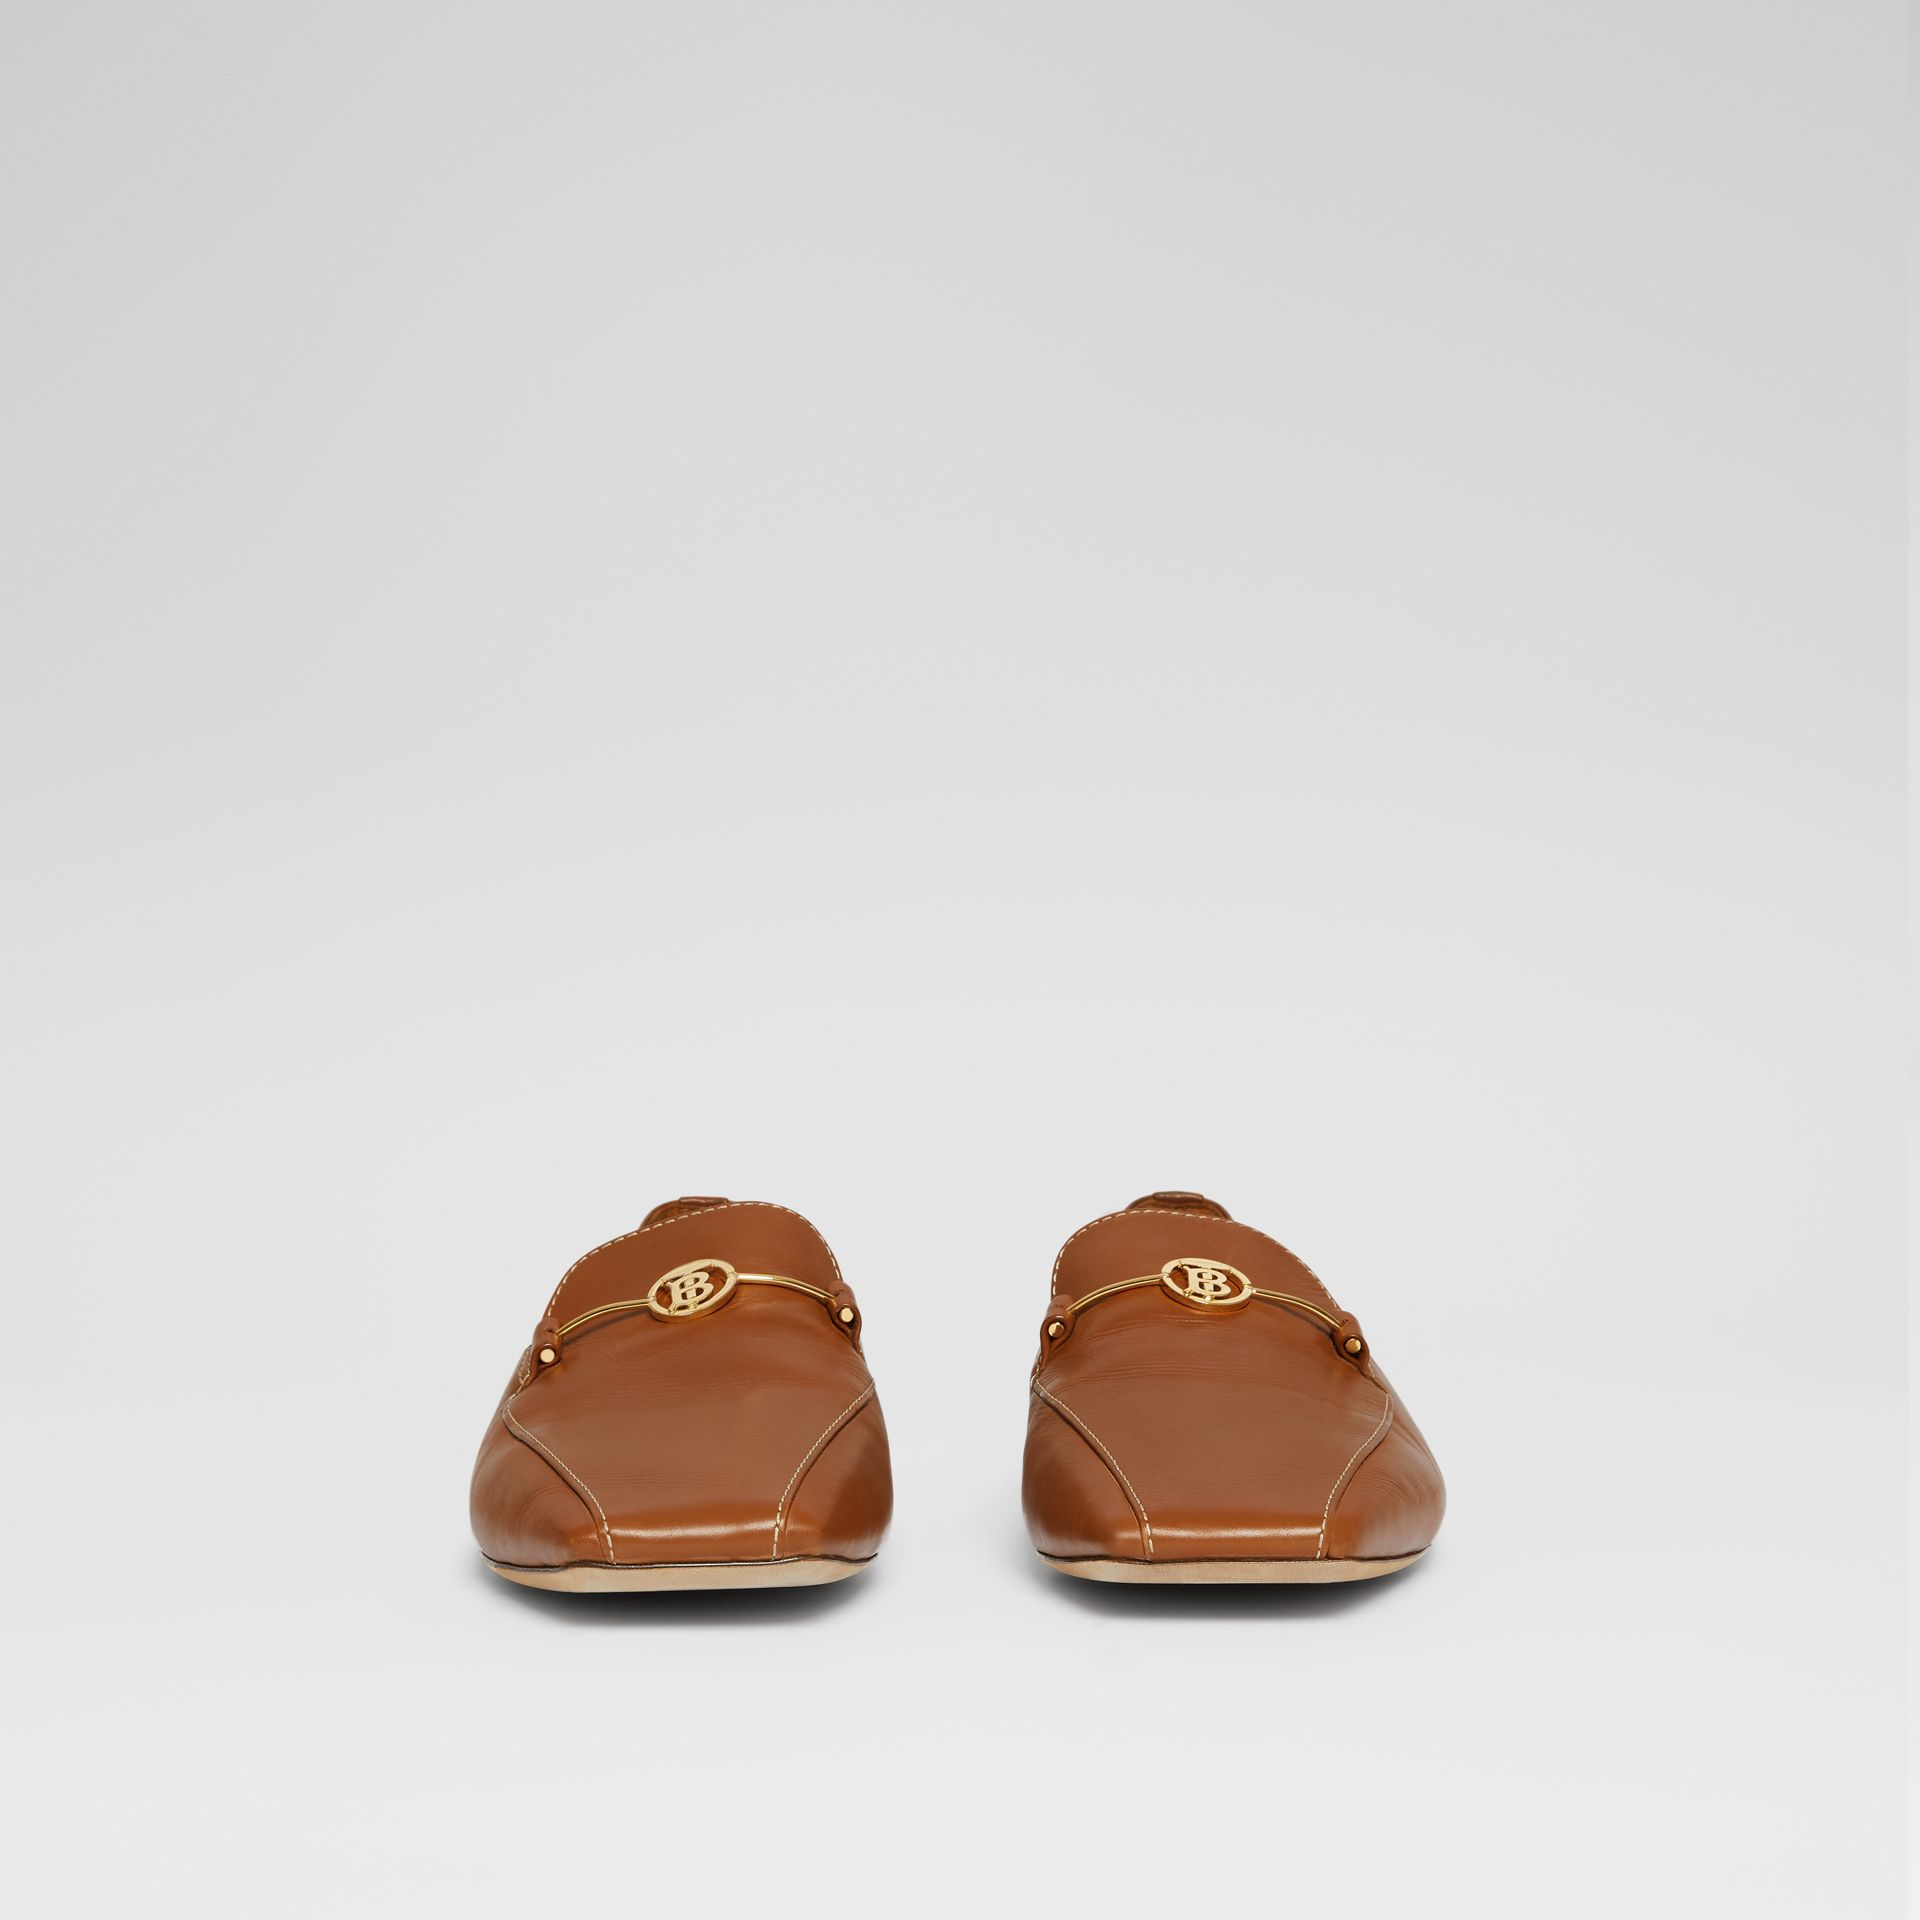 Monogram Motif Leather Loafers in Tan - Women | Burberry - gallery image 3